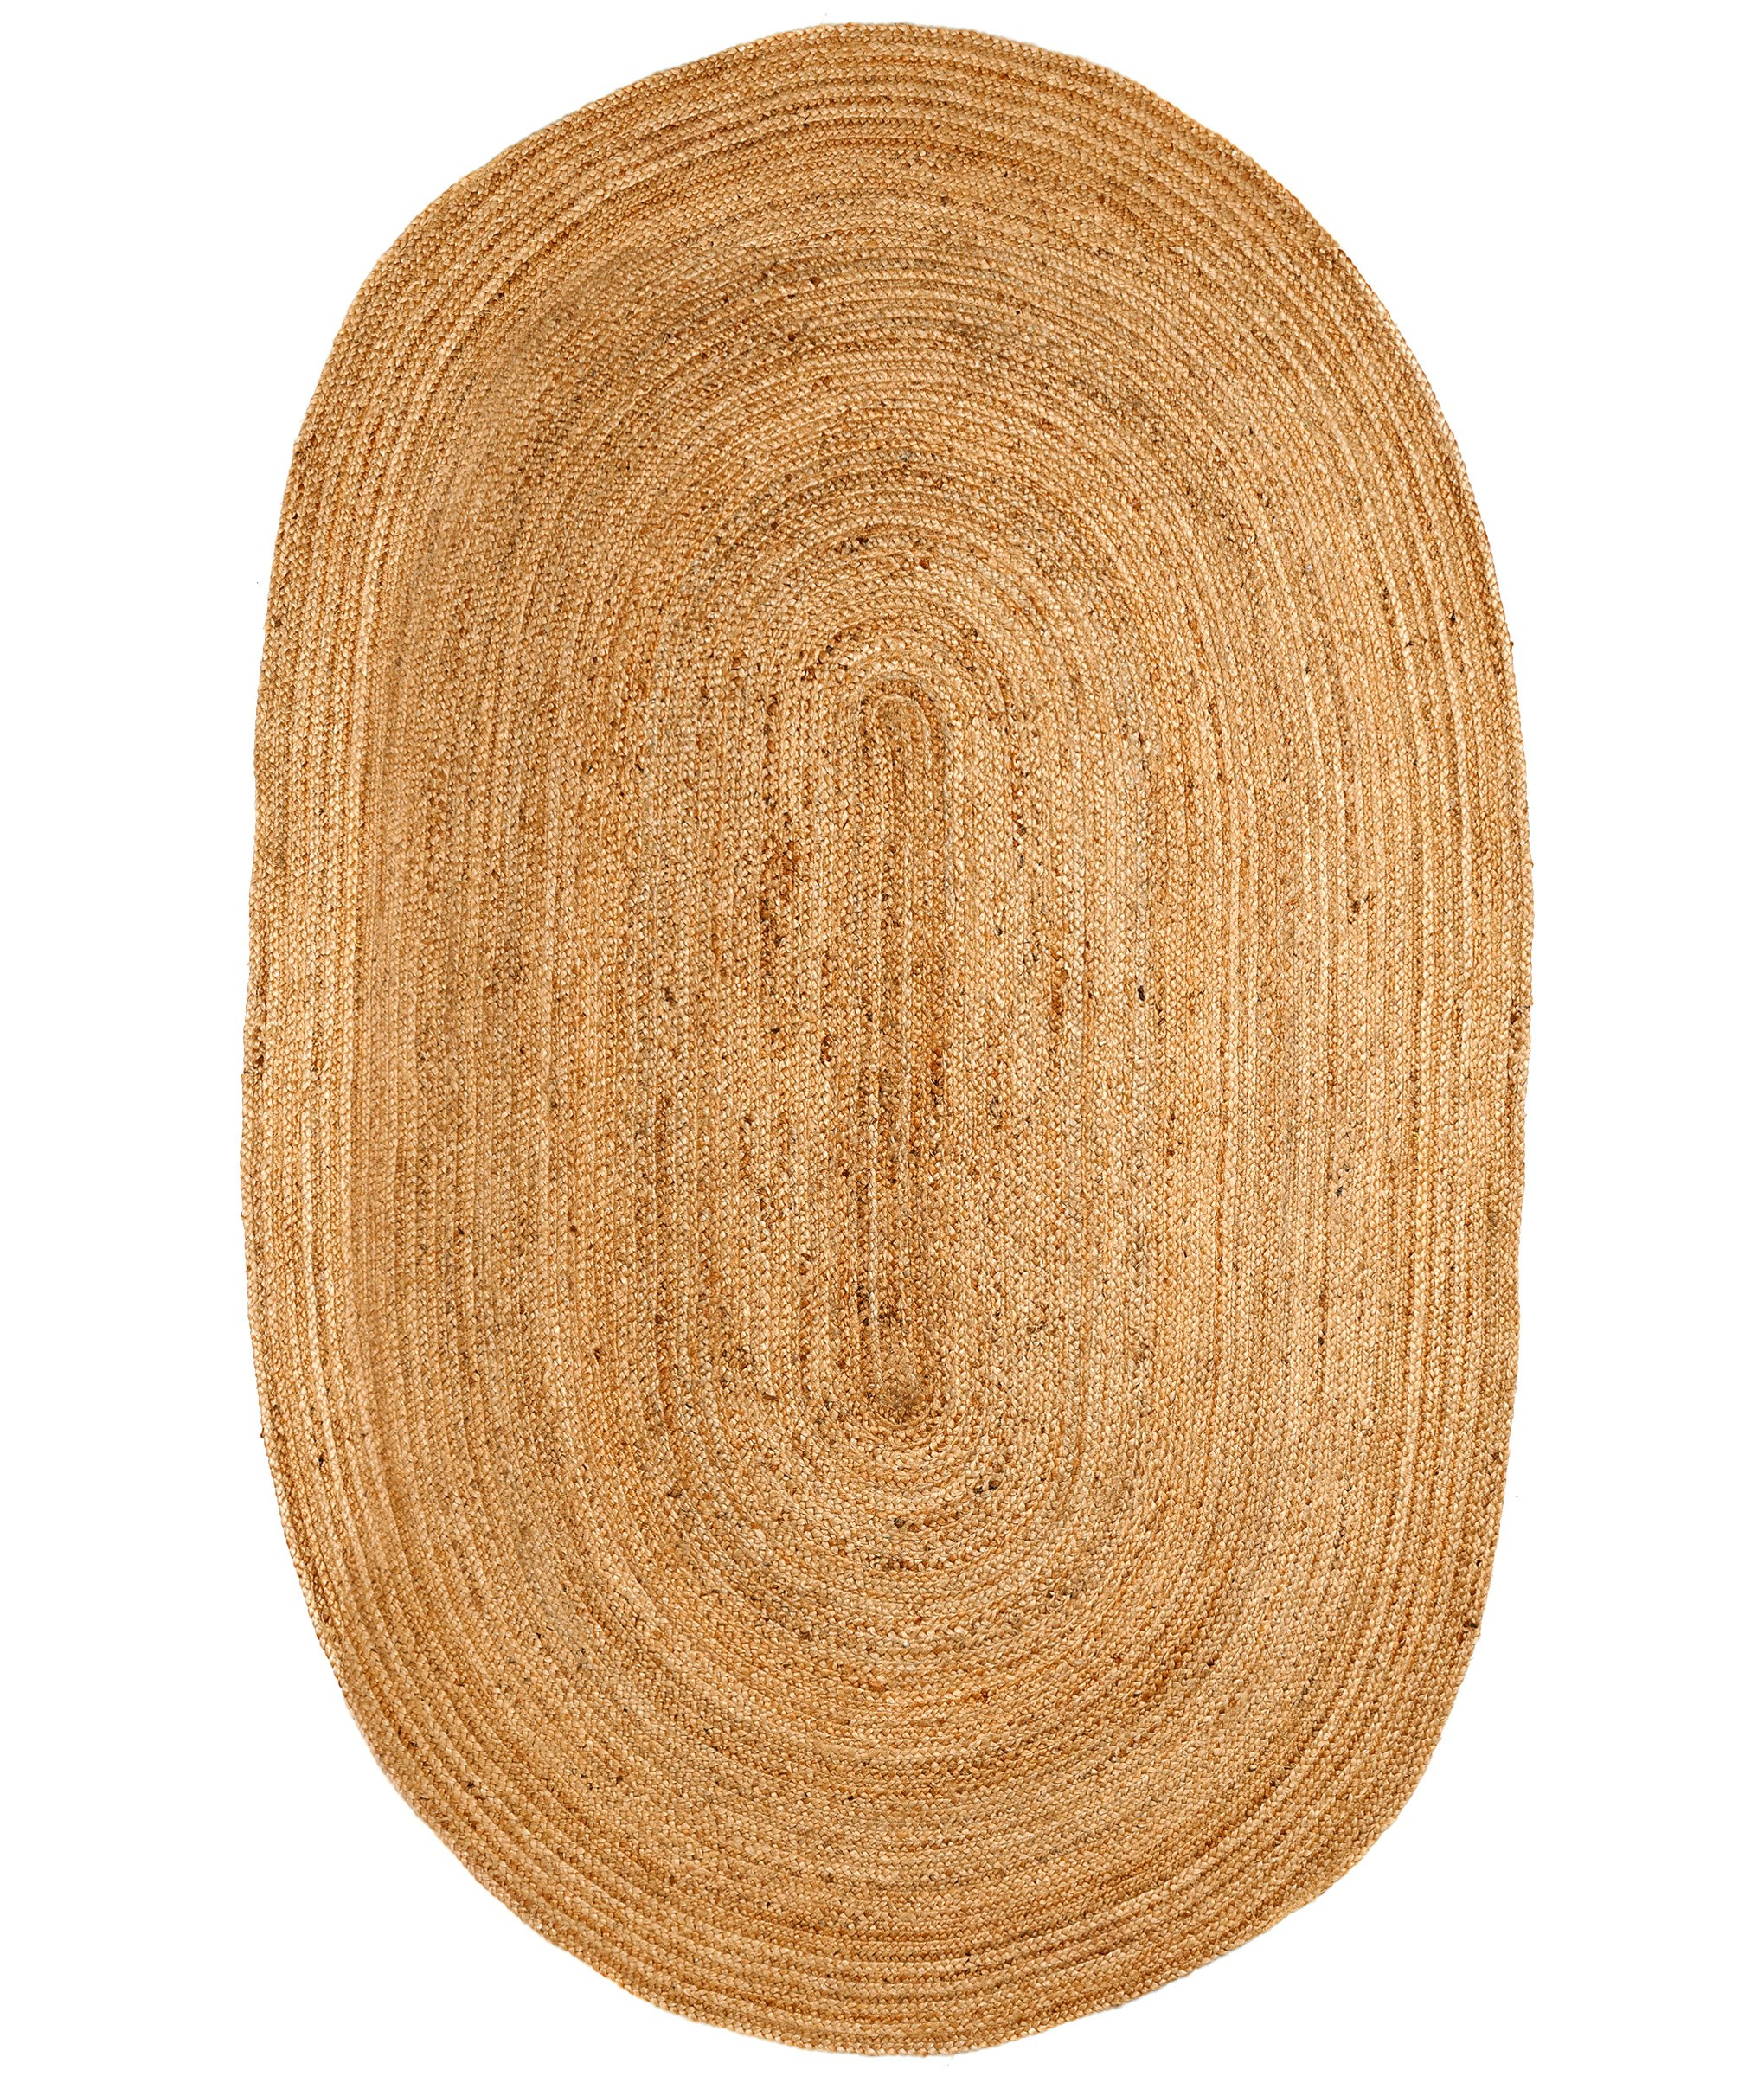 Image of: Teddy 6 X 9 Oval Area Rug Cali Bamboo